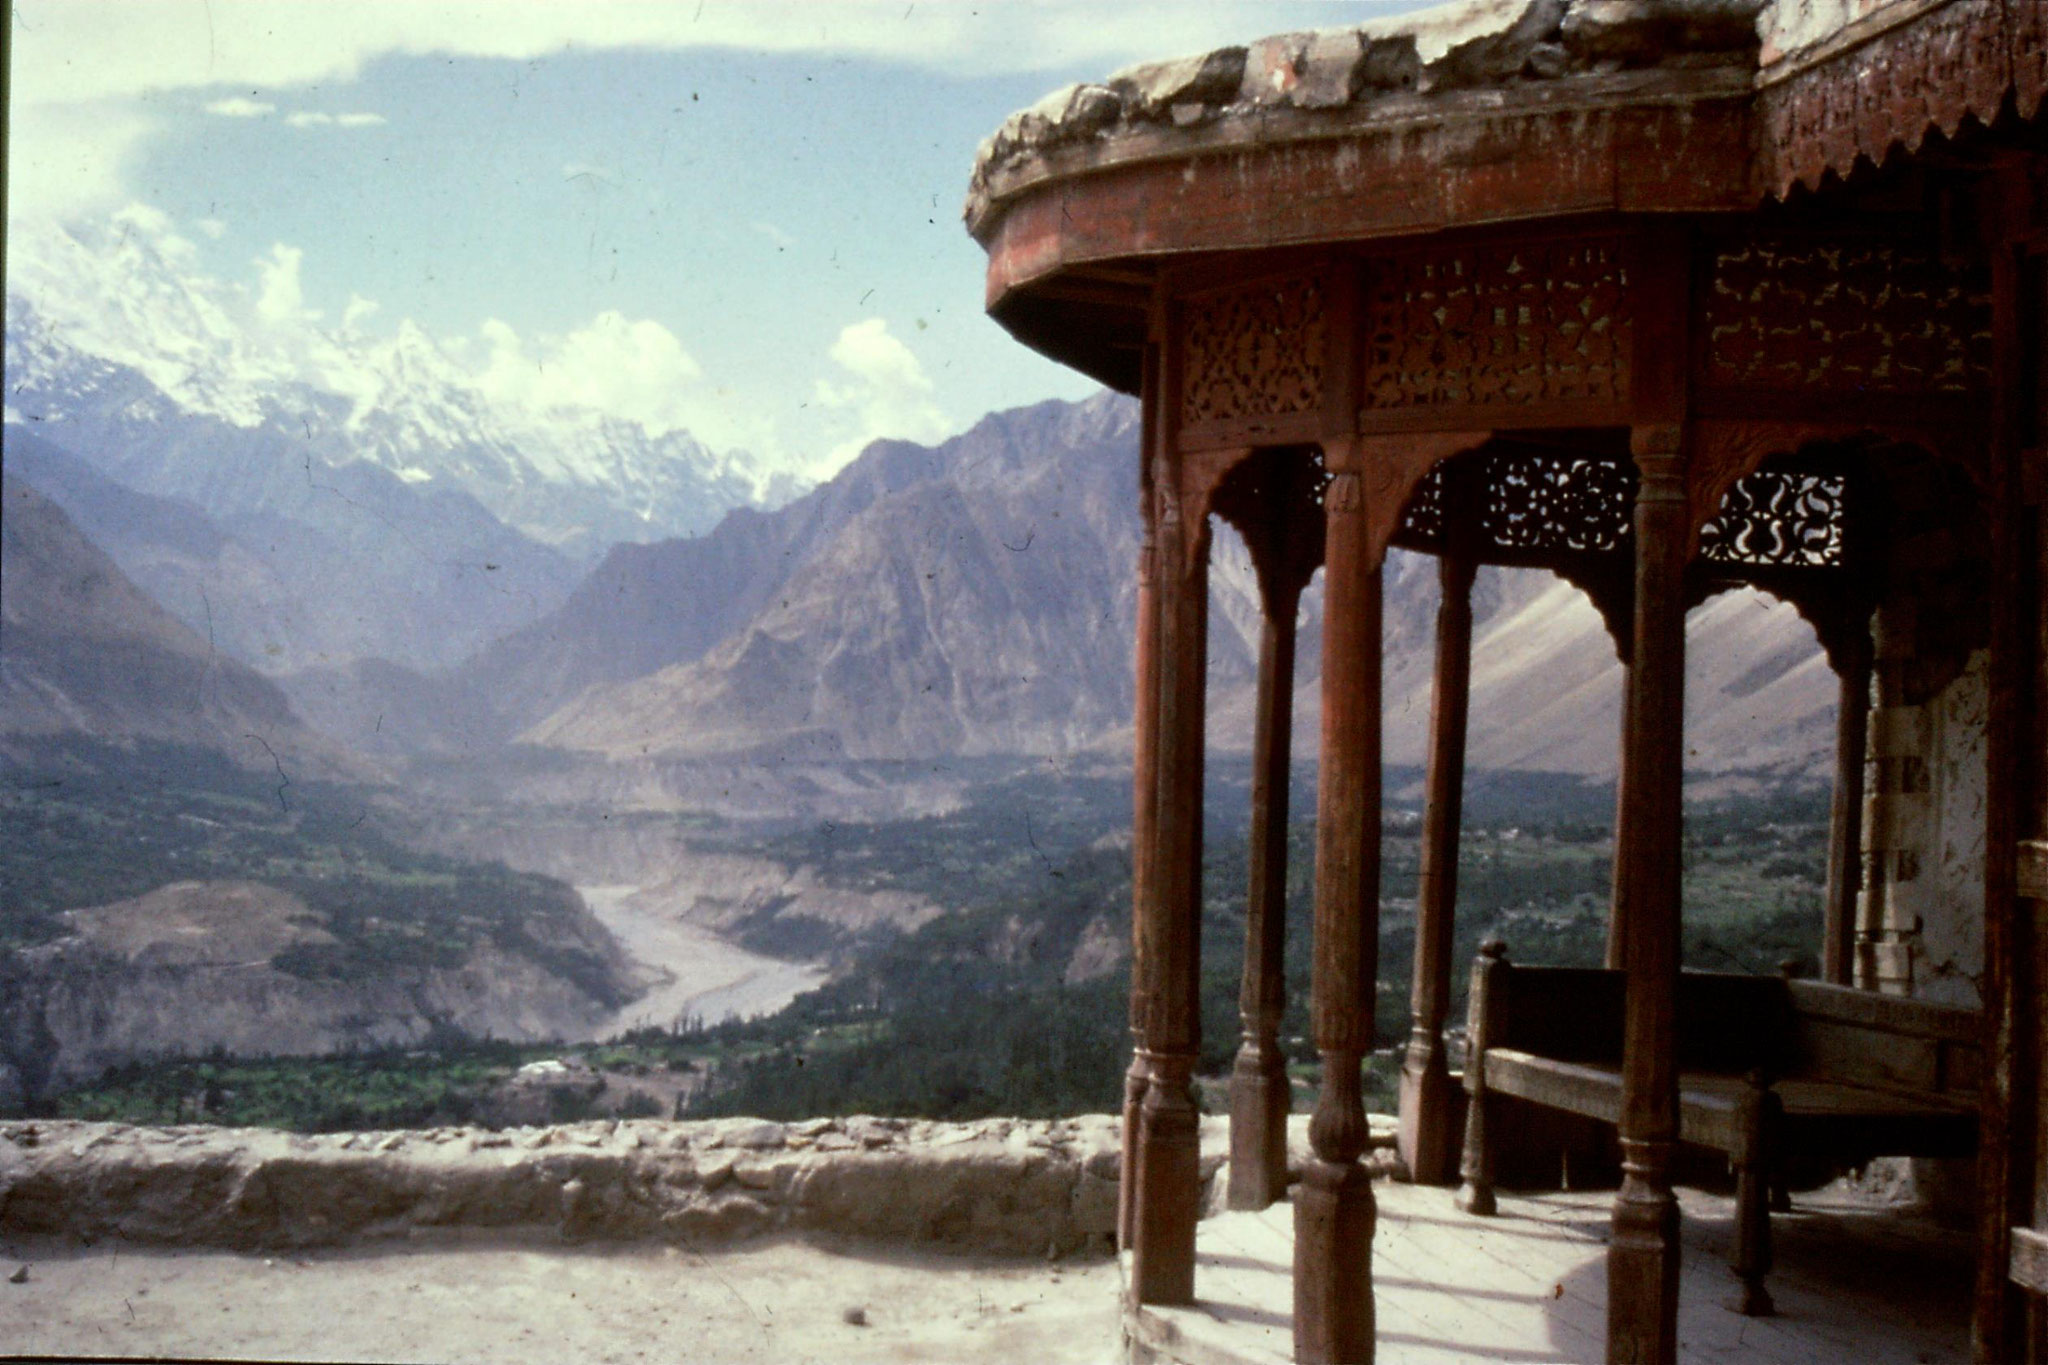 13/9/1989: 17: Karimabad view of Hunza Valley